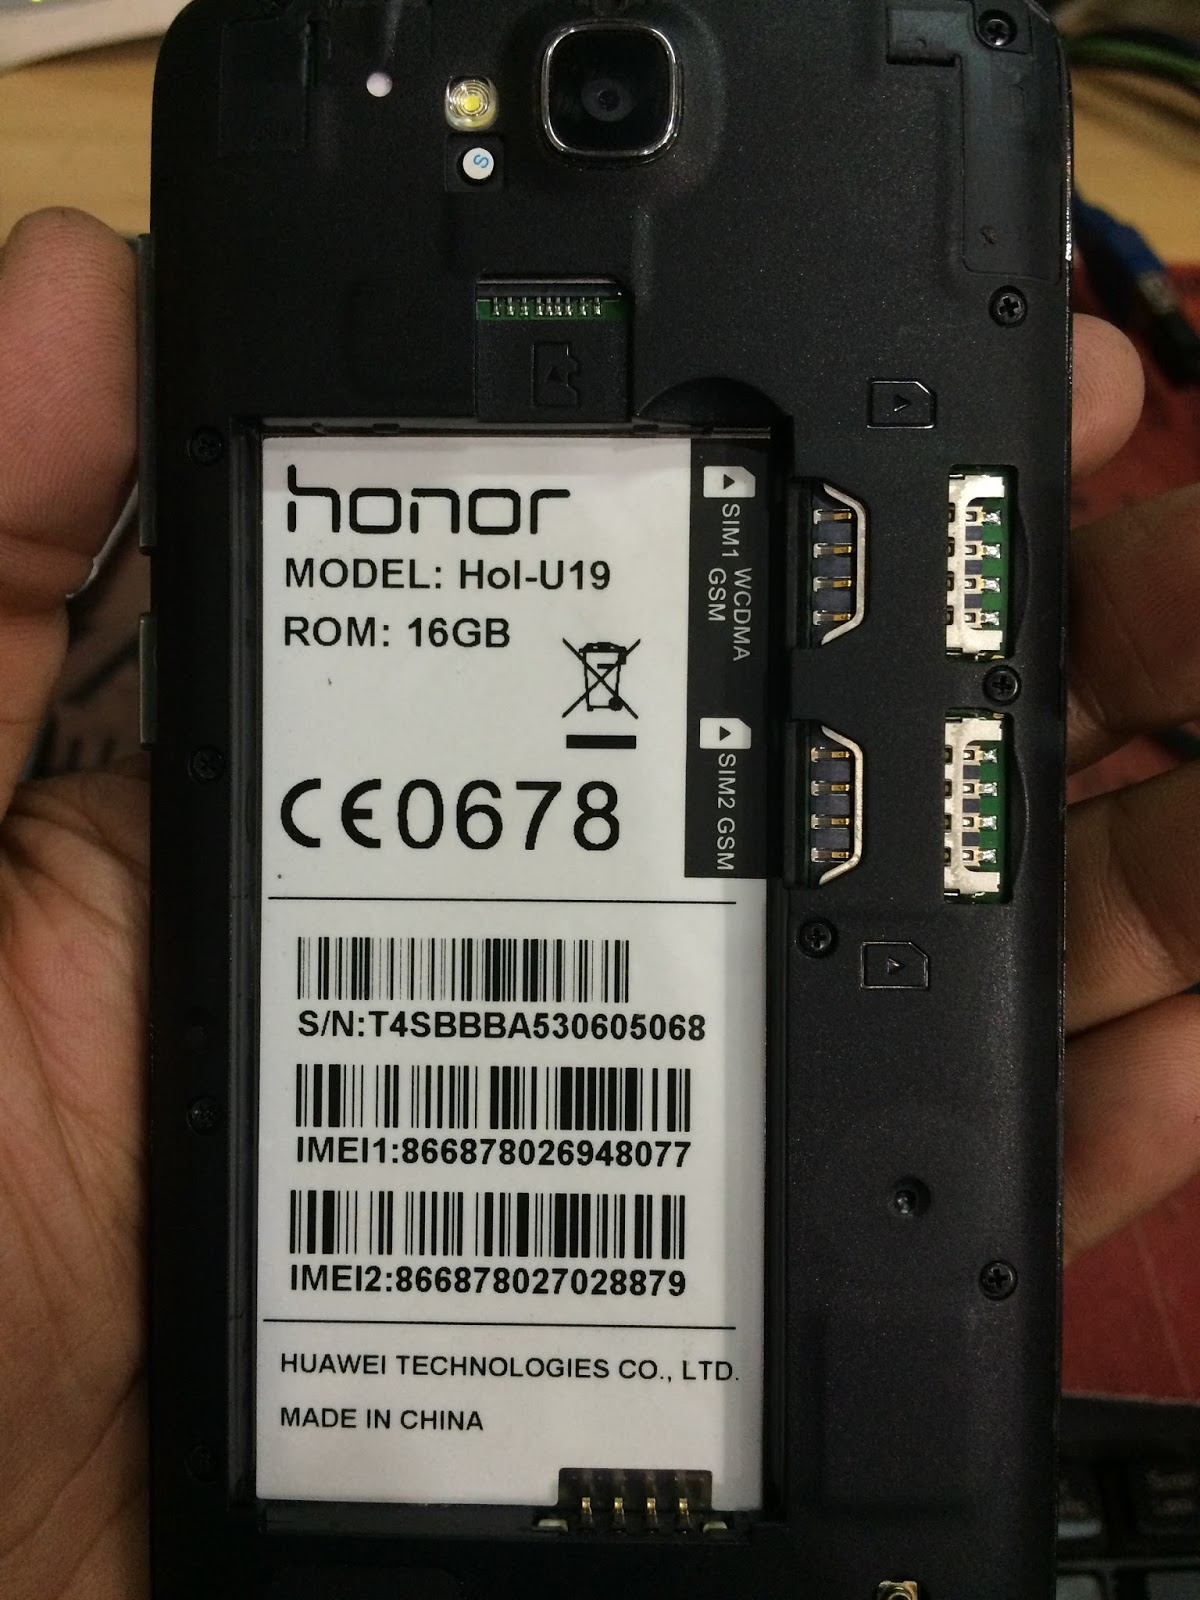 Foysal Telecom Android Official Firmware  Huawei Honor Hol